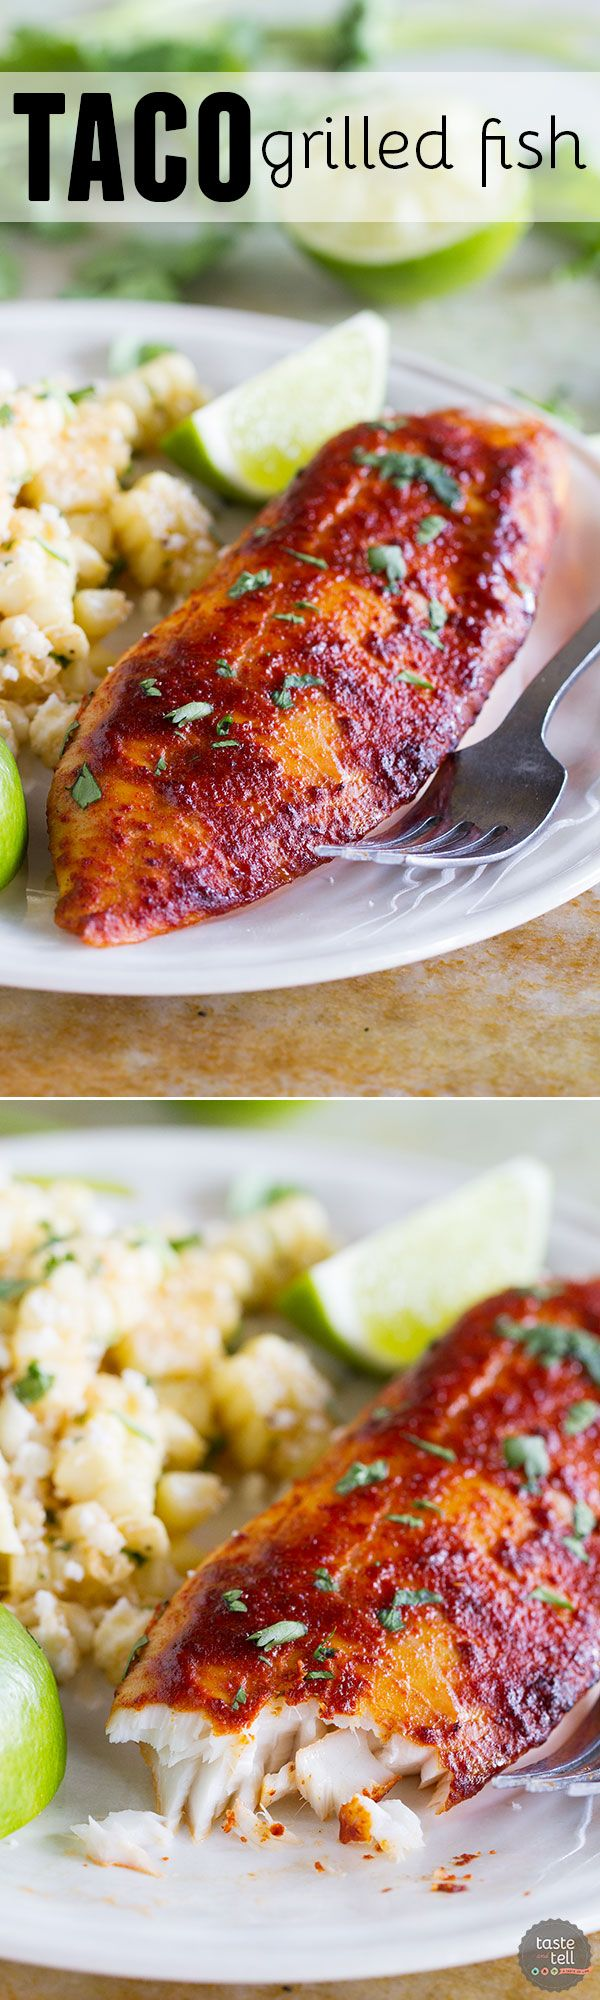 21368 best images about easy recipes on pinterest for Easy healthy fish recipes